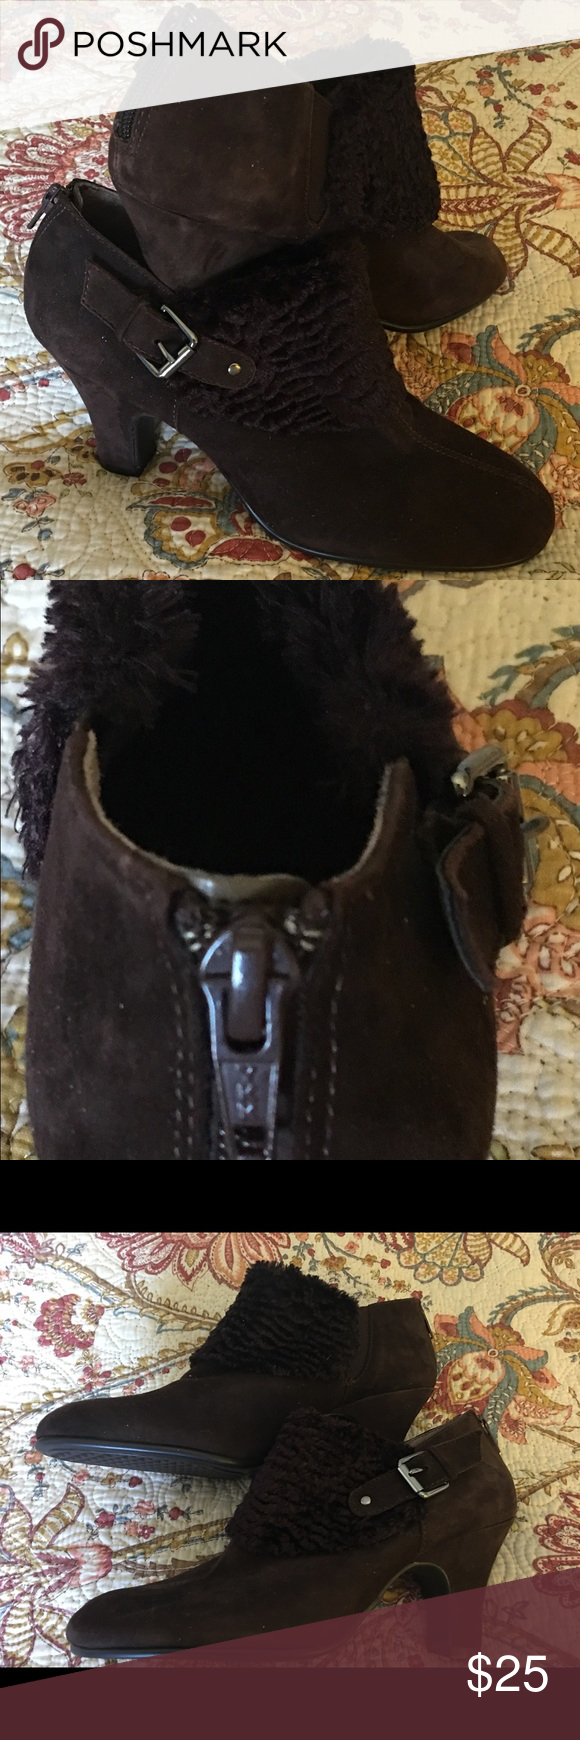 Chocolate Suede Booties Stylish,sexy and just plain ole cutie bootie AEROSOLES Shoes Ankle Boots & Booties